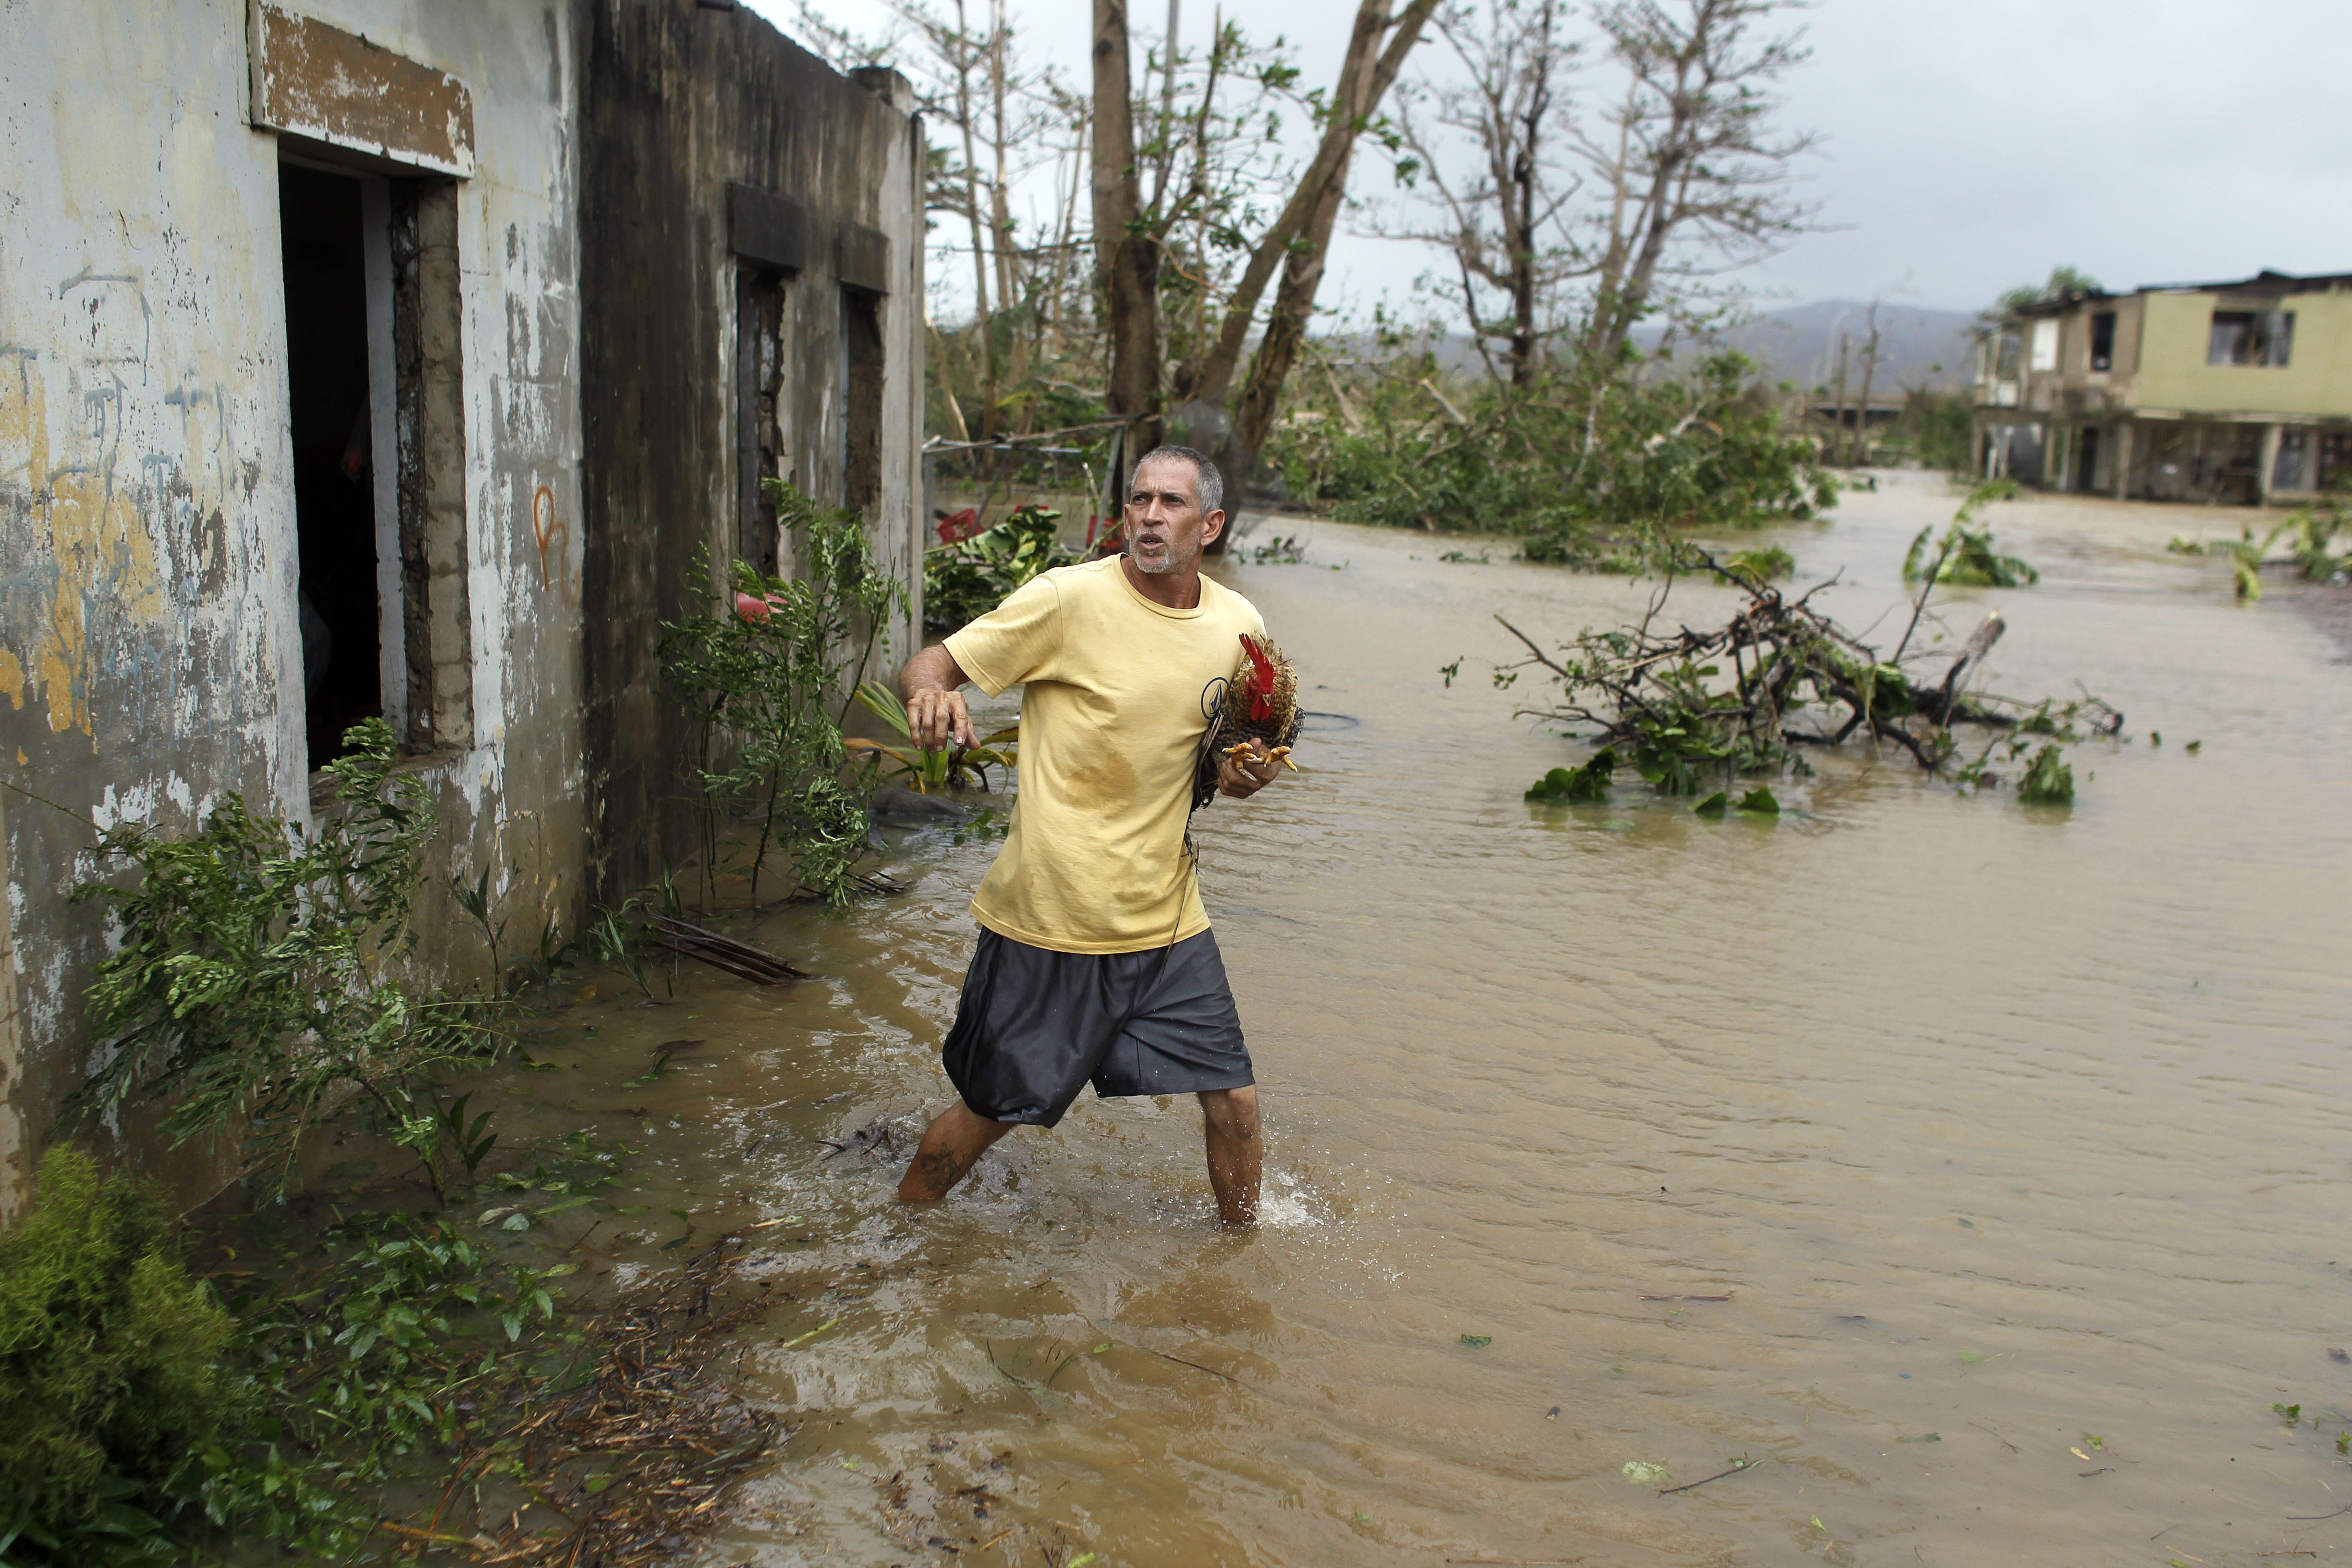 <div class='meta'><div class='origin-logo' data-origin='none'></div><span class='caption-text' data-credit='RICARDO ARDUENGO/AFP/Getty Images'>A man rescues a rooster from his flooded garage as Hurricane Maria hits Puerto Rico in Fajardo, on September 20, 2017.</span></div>